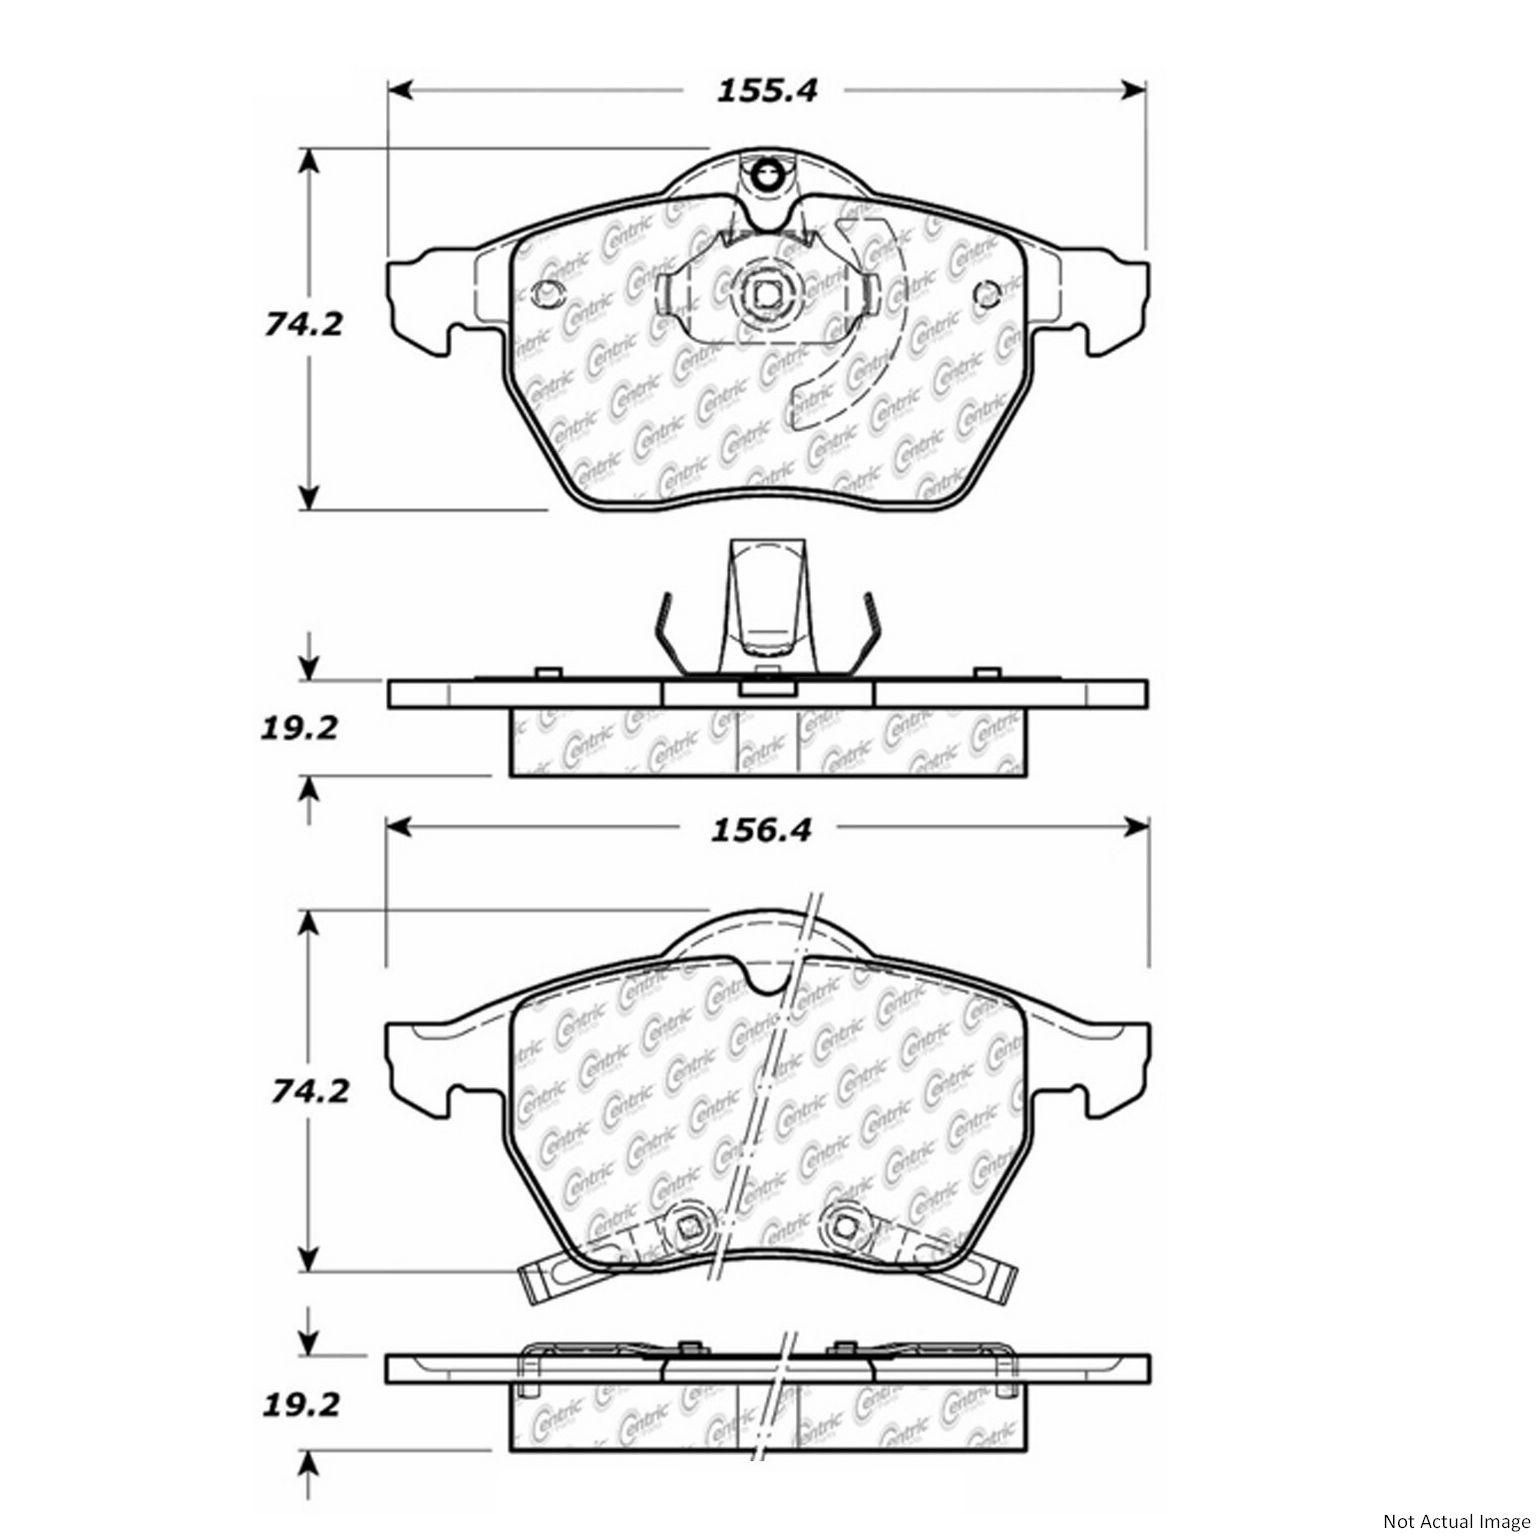 StopTech 300.08190 2000 Saturn LS1 Front Disc Brake Pad